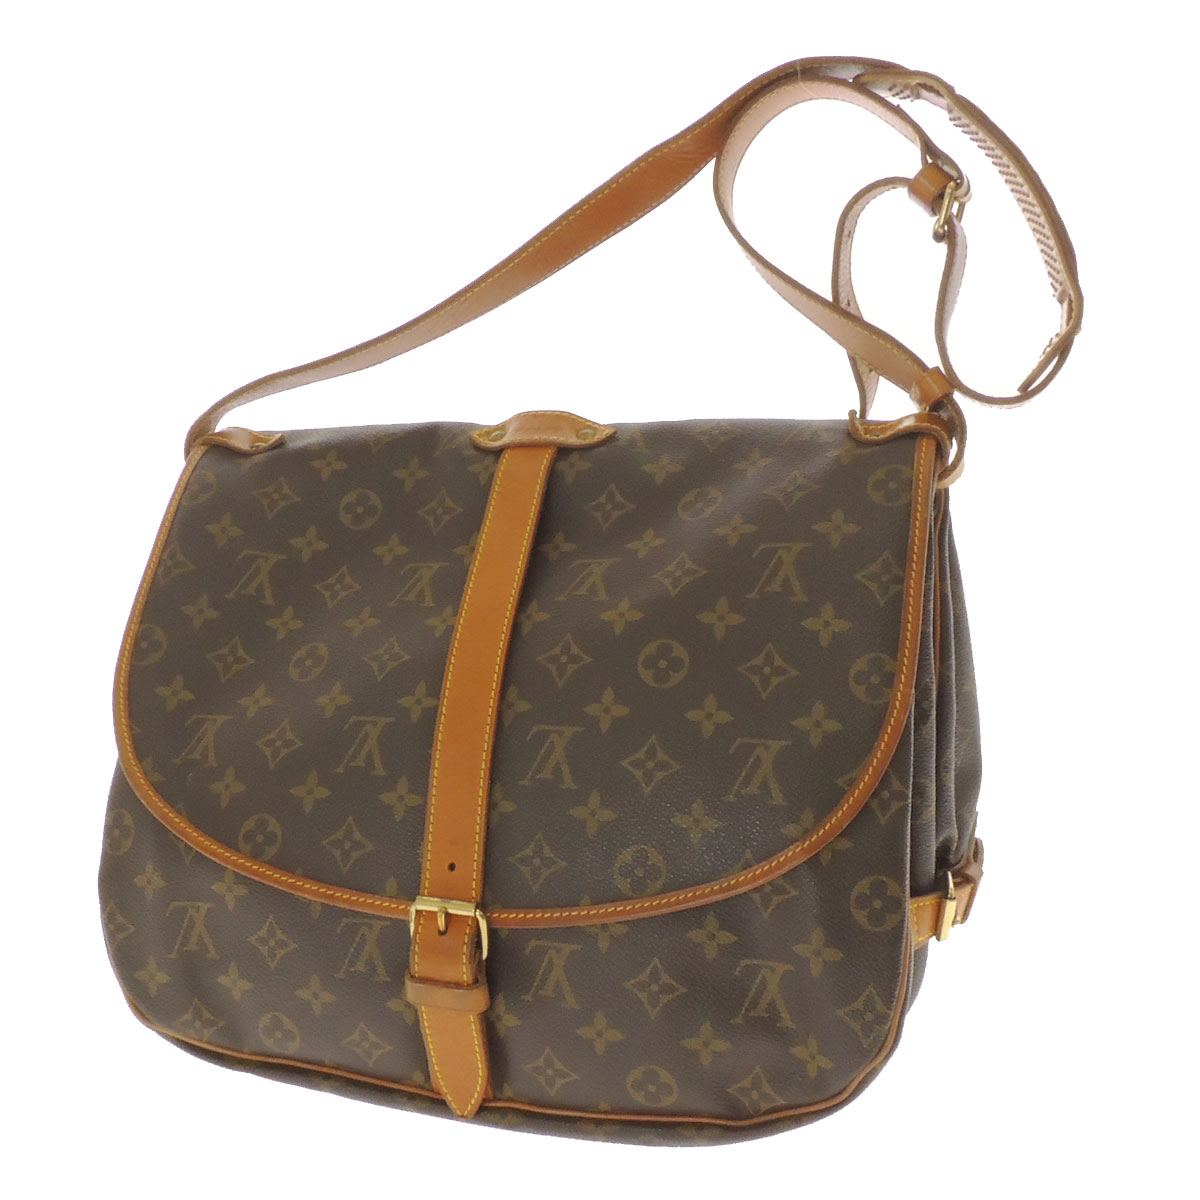 LOUIS VUITTON ソミュール L M42254 shoulder bag monogram canvas Lady's fs3gm